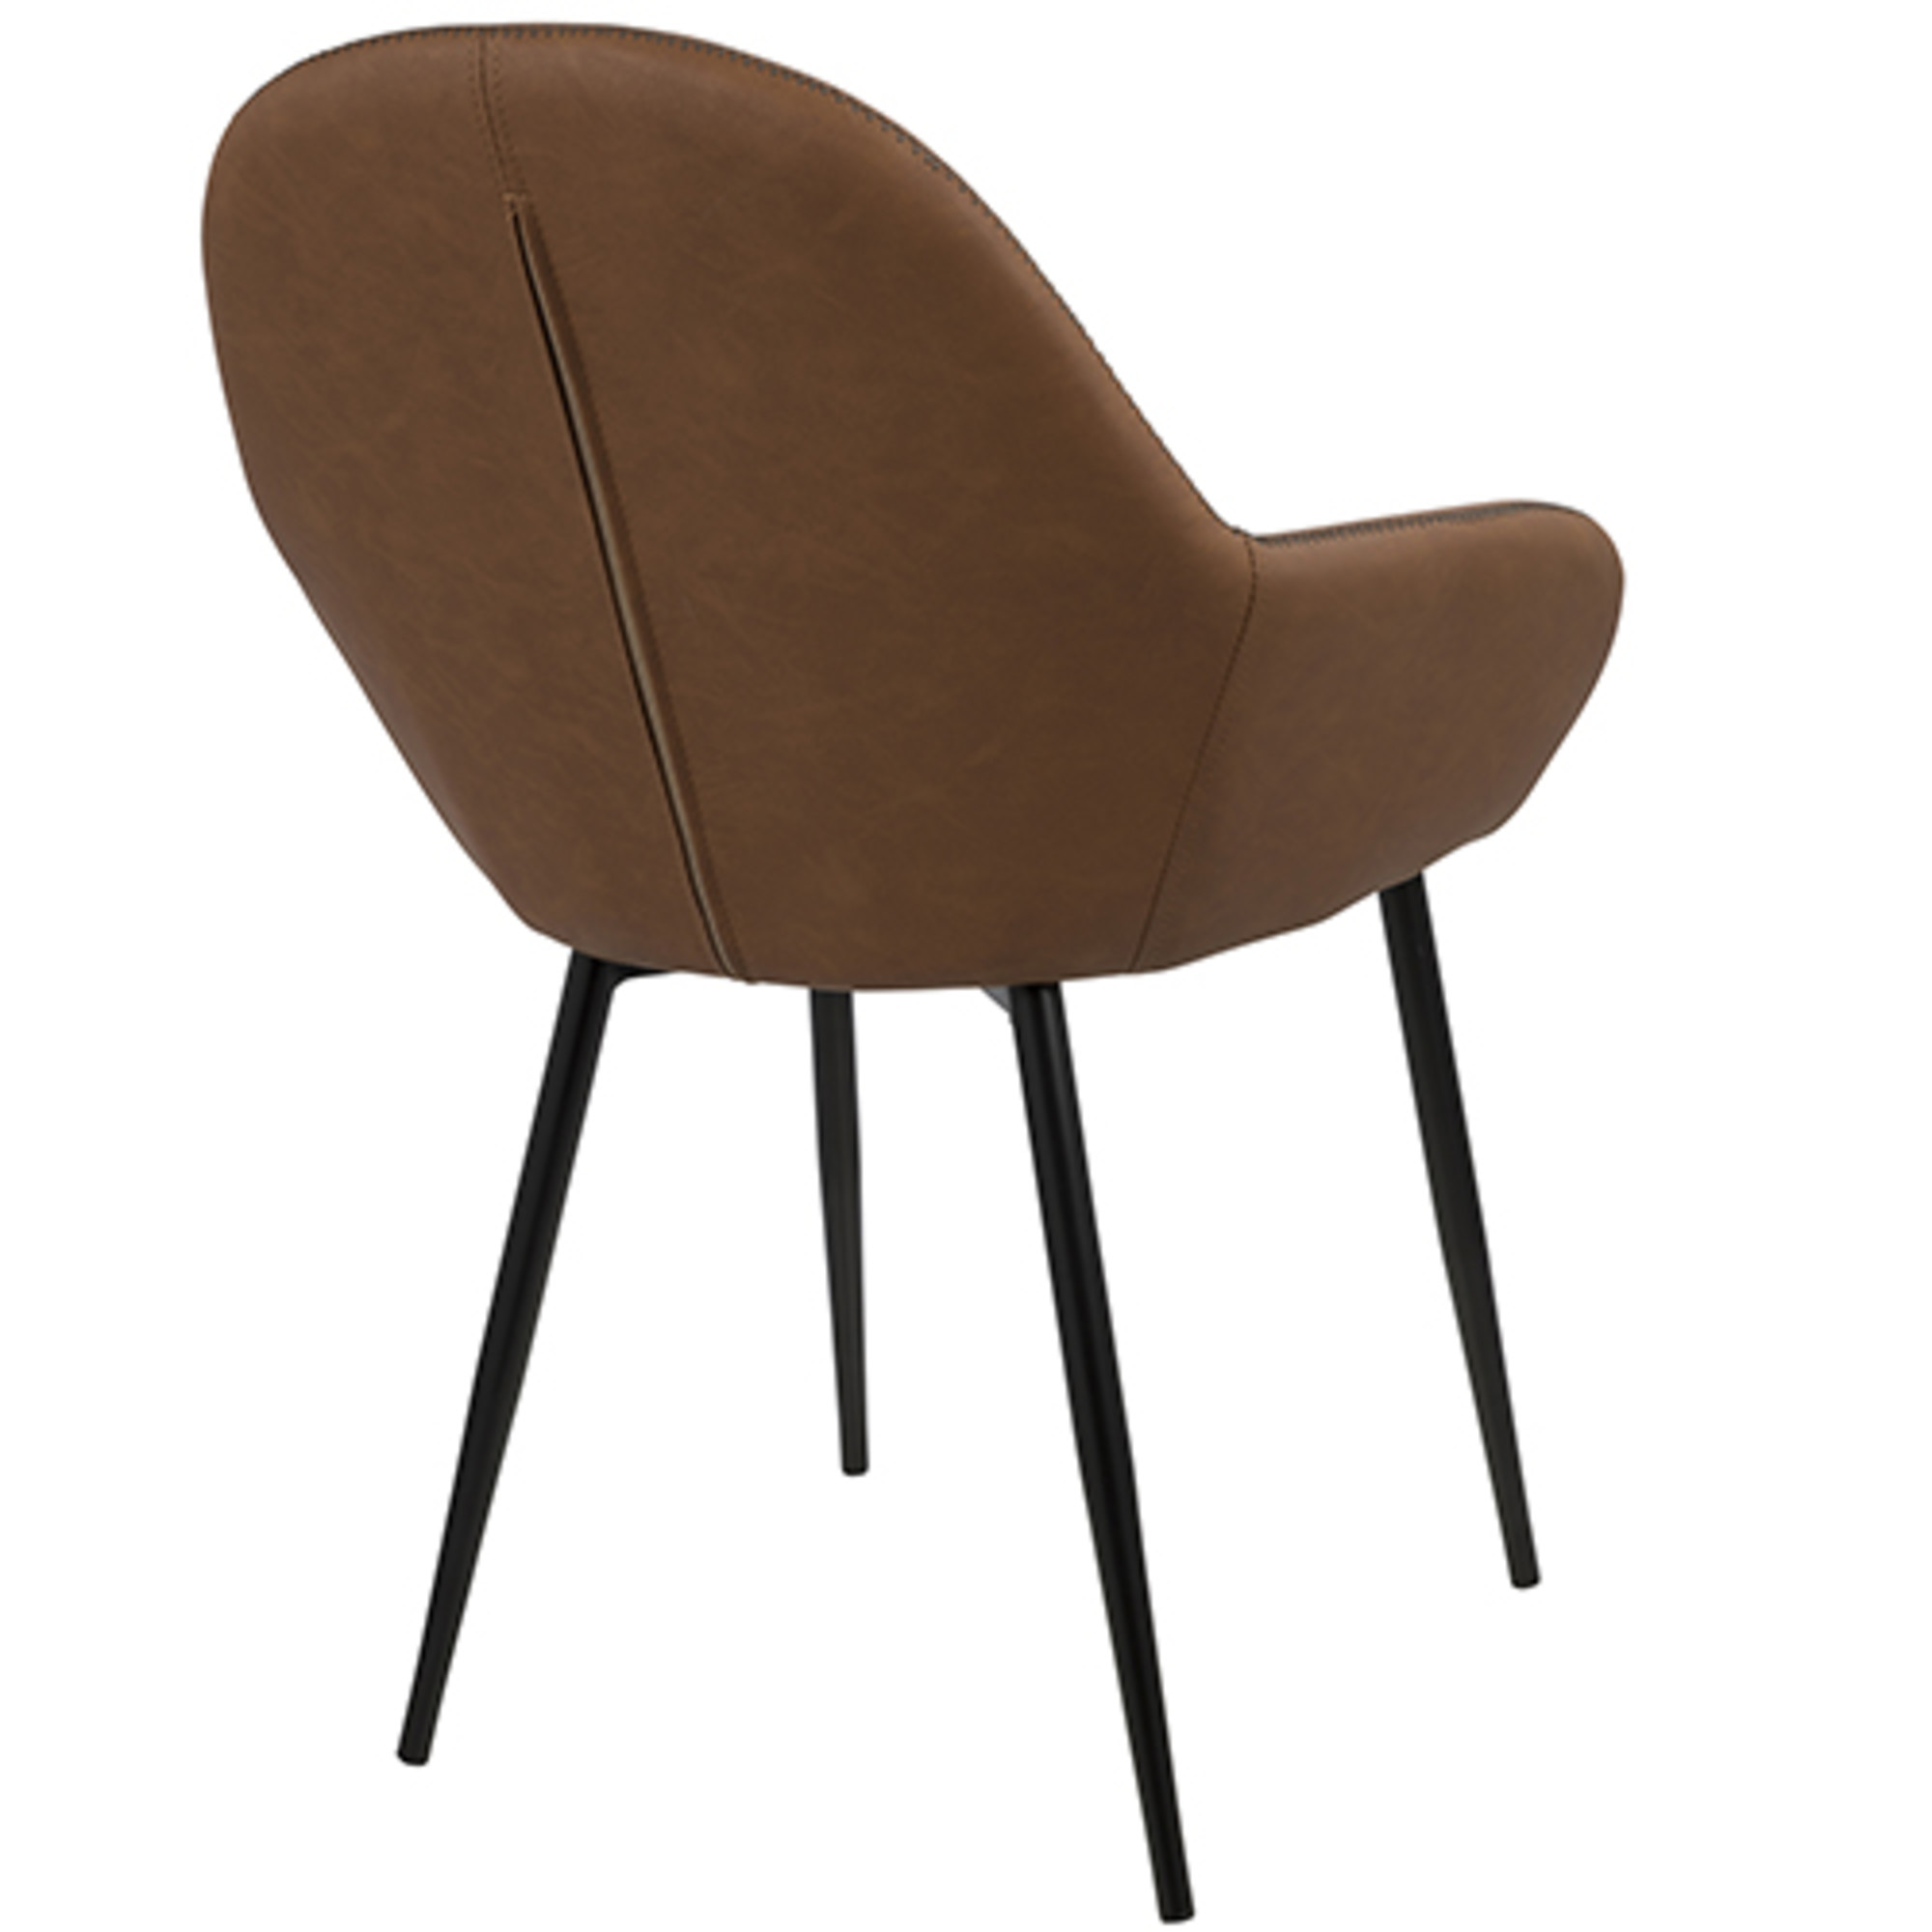 3e53f617d3ac Clubhouse Dining Chair - Set Of 2 - LumiSource - Stylish Decor at ...